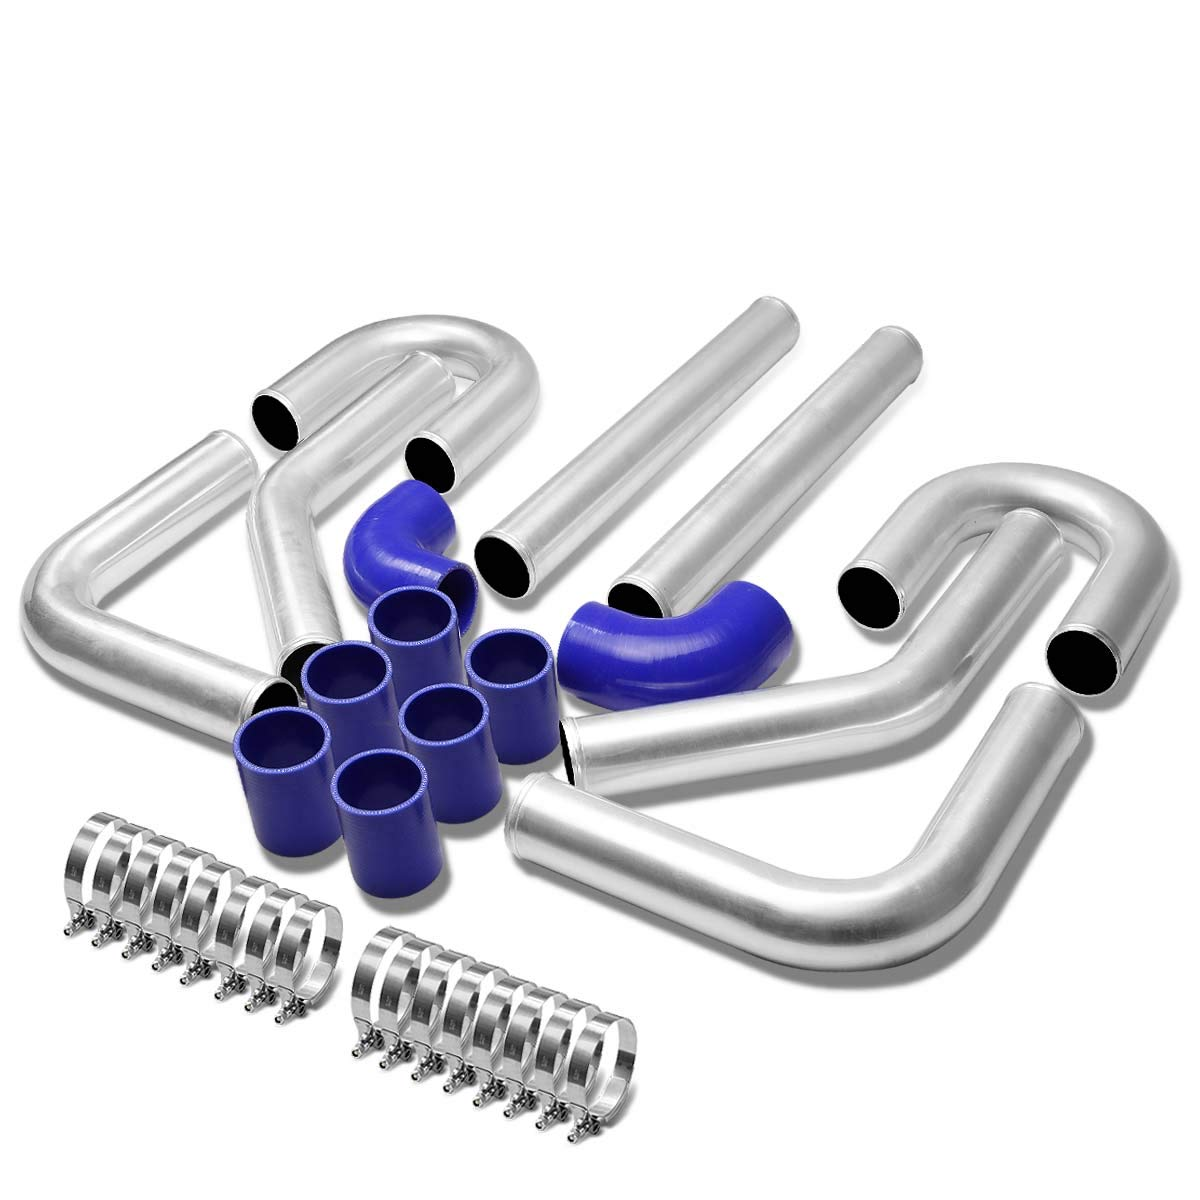 Universal 3 8pcs Black Front Mount Turbo Intercooler Piping+Silicone Hose+Clamps Kit